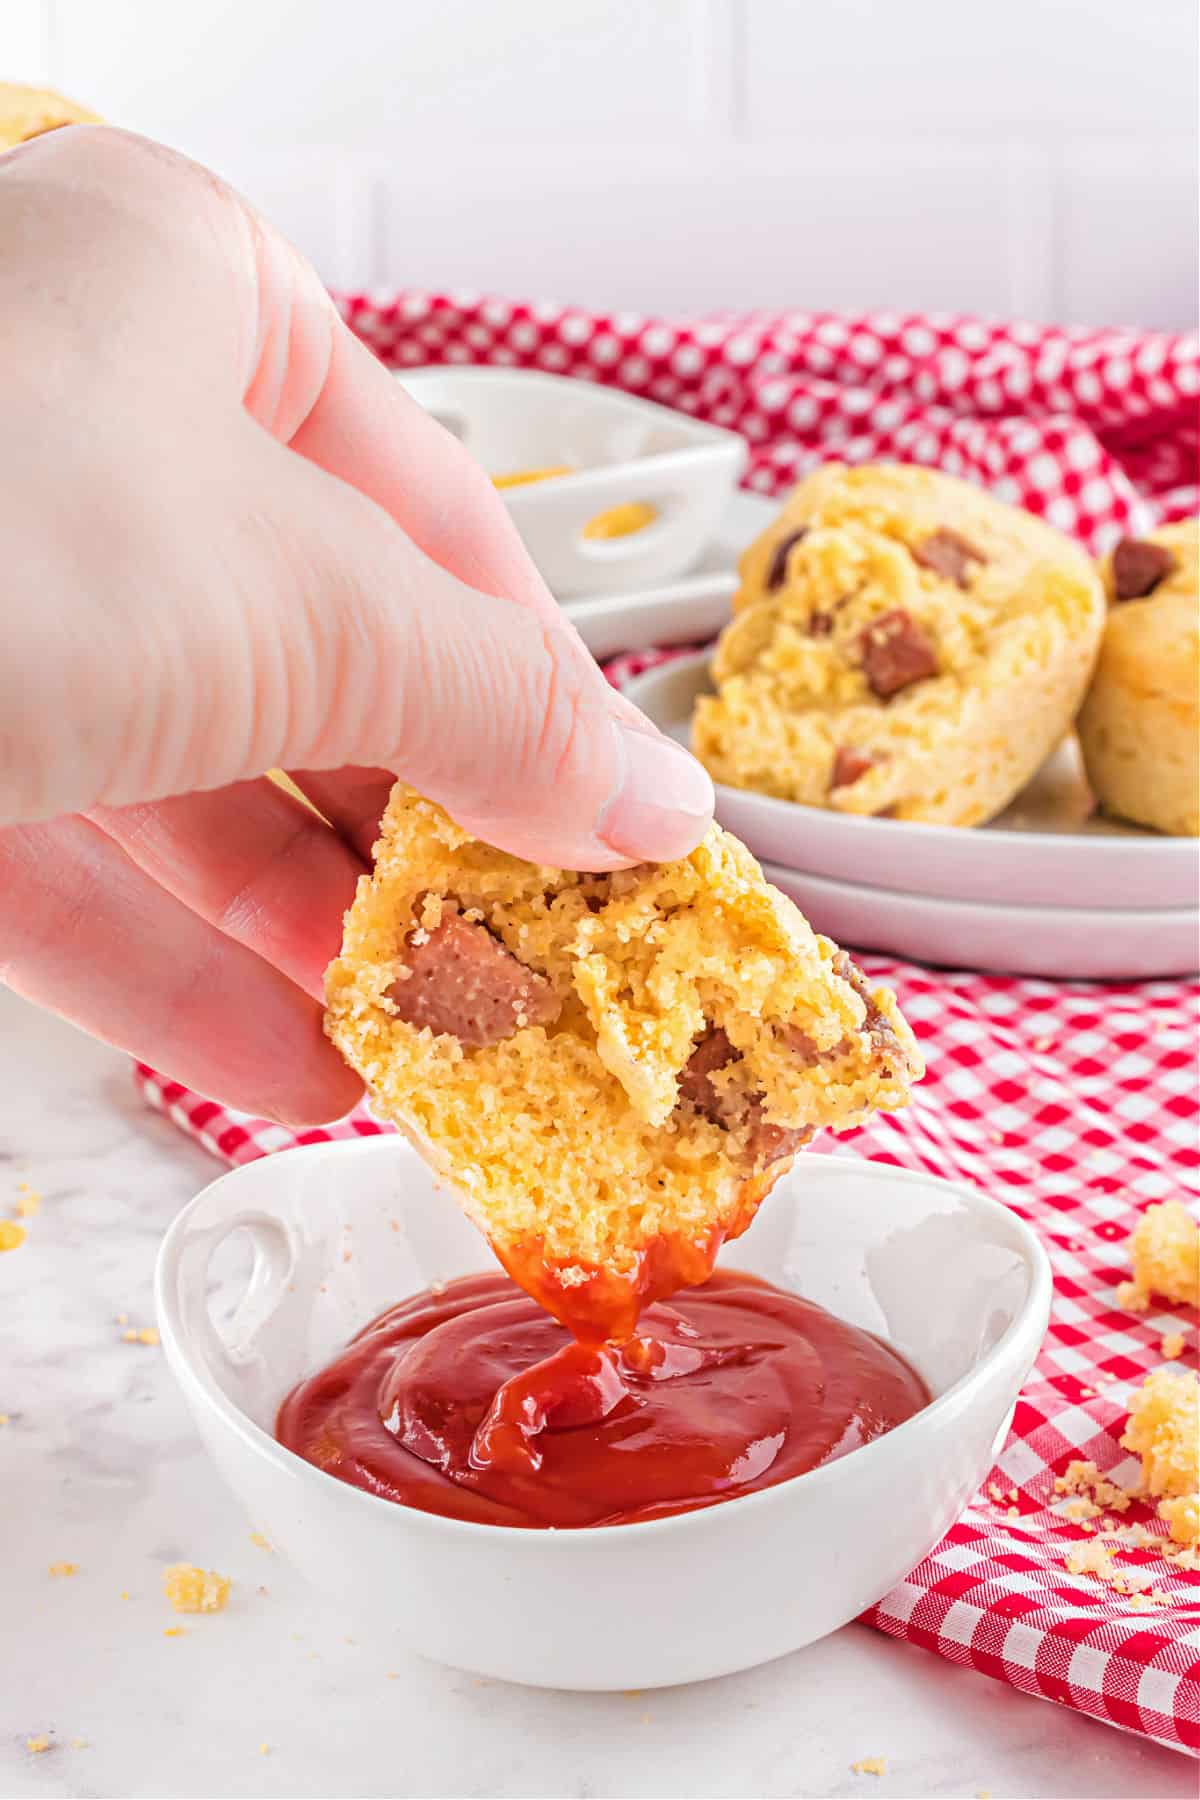 Half a corn dog muffin being dipped into a white bowl with ketchup.